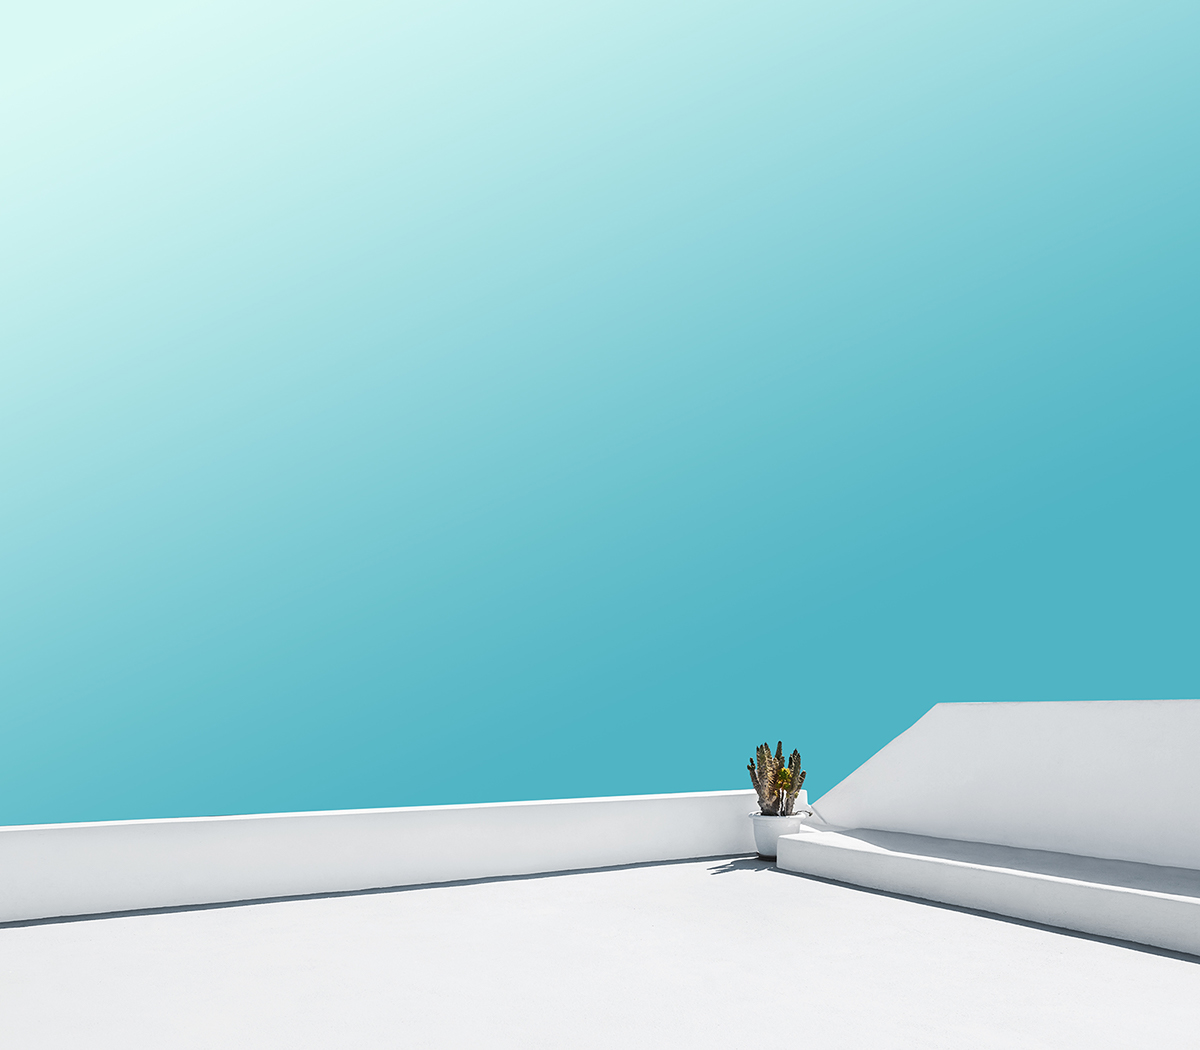 Art director creates calm minimalist images of for A minimalist